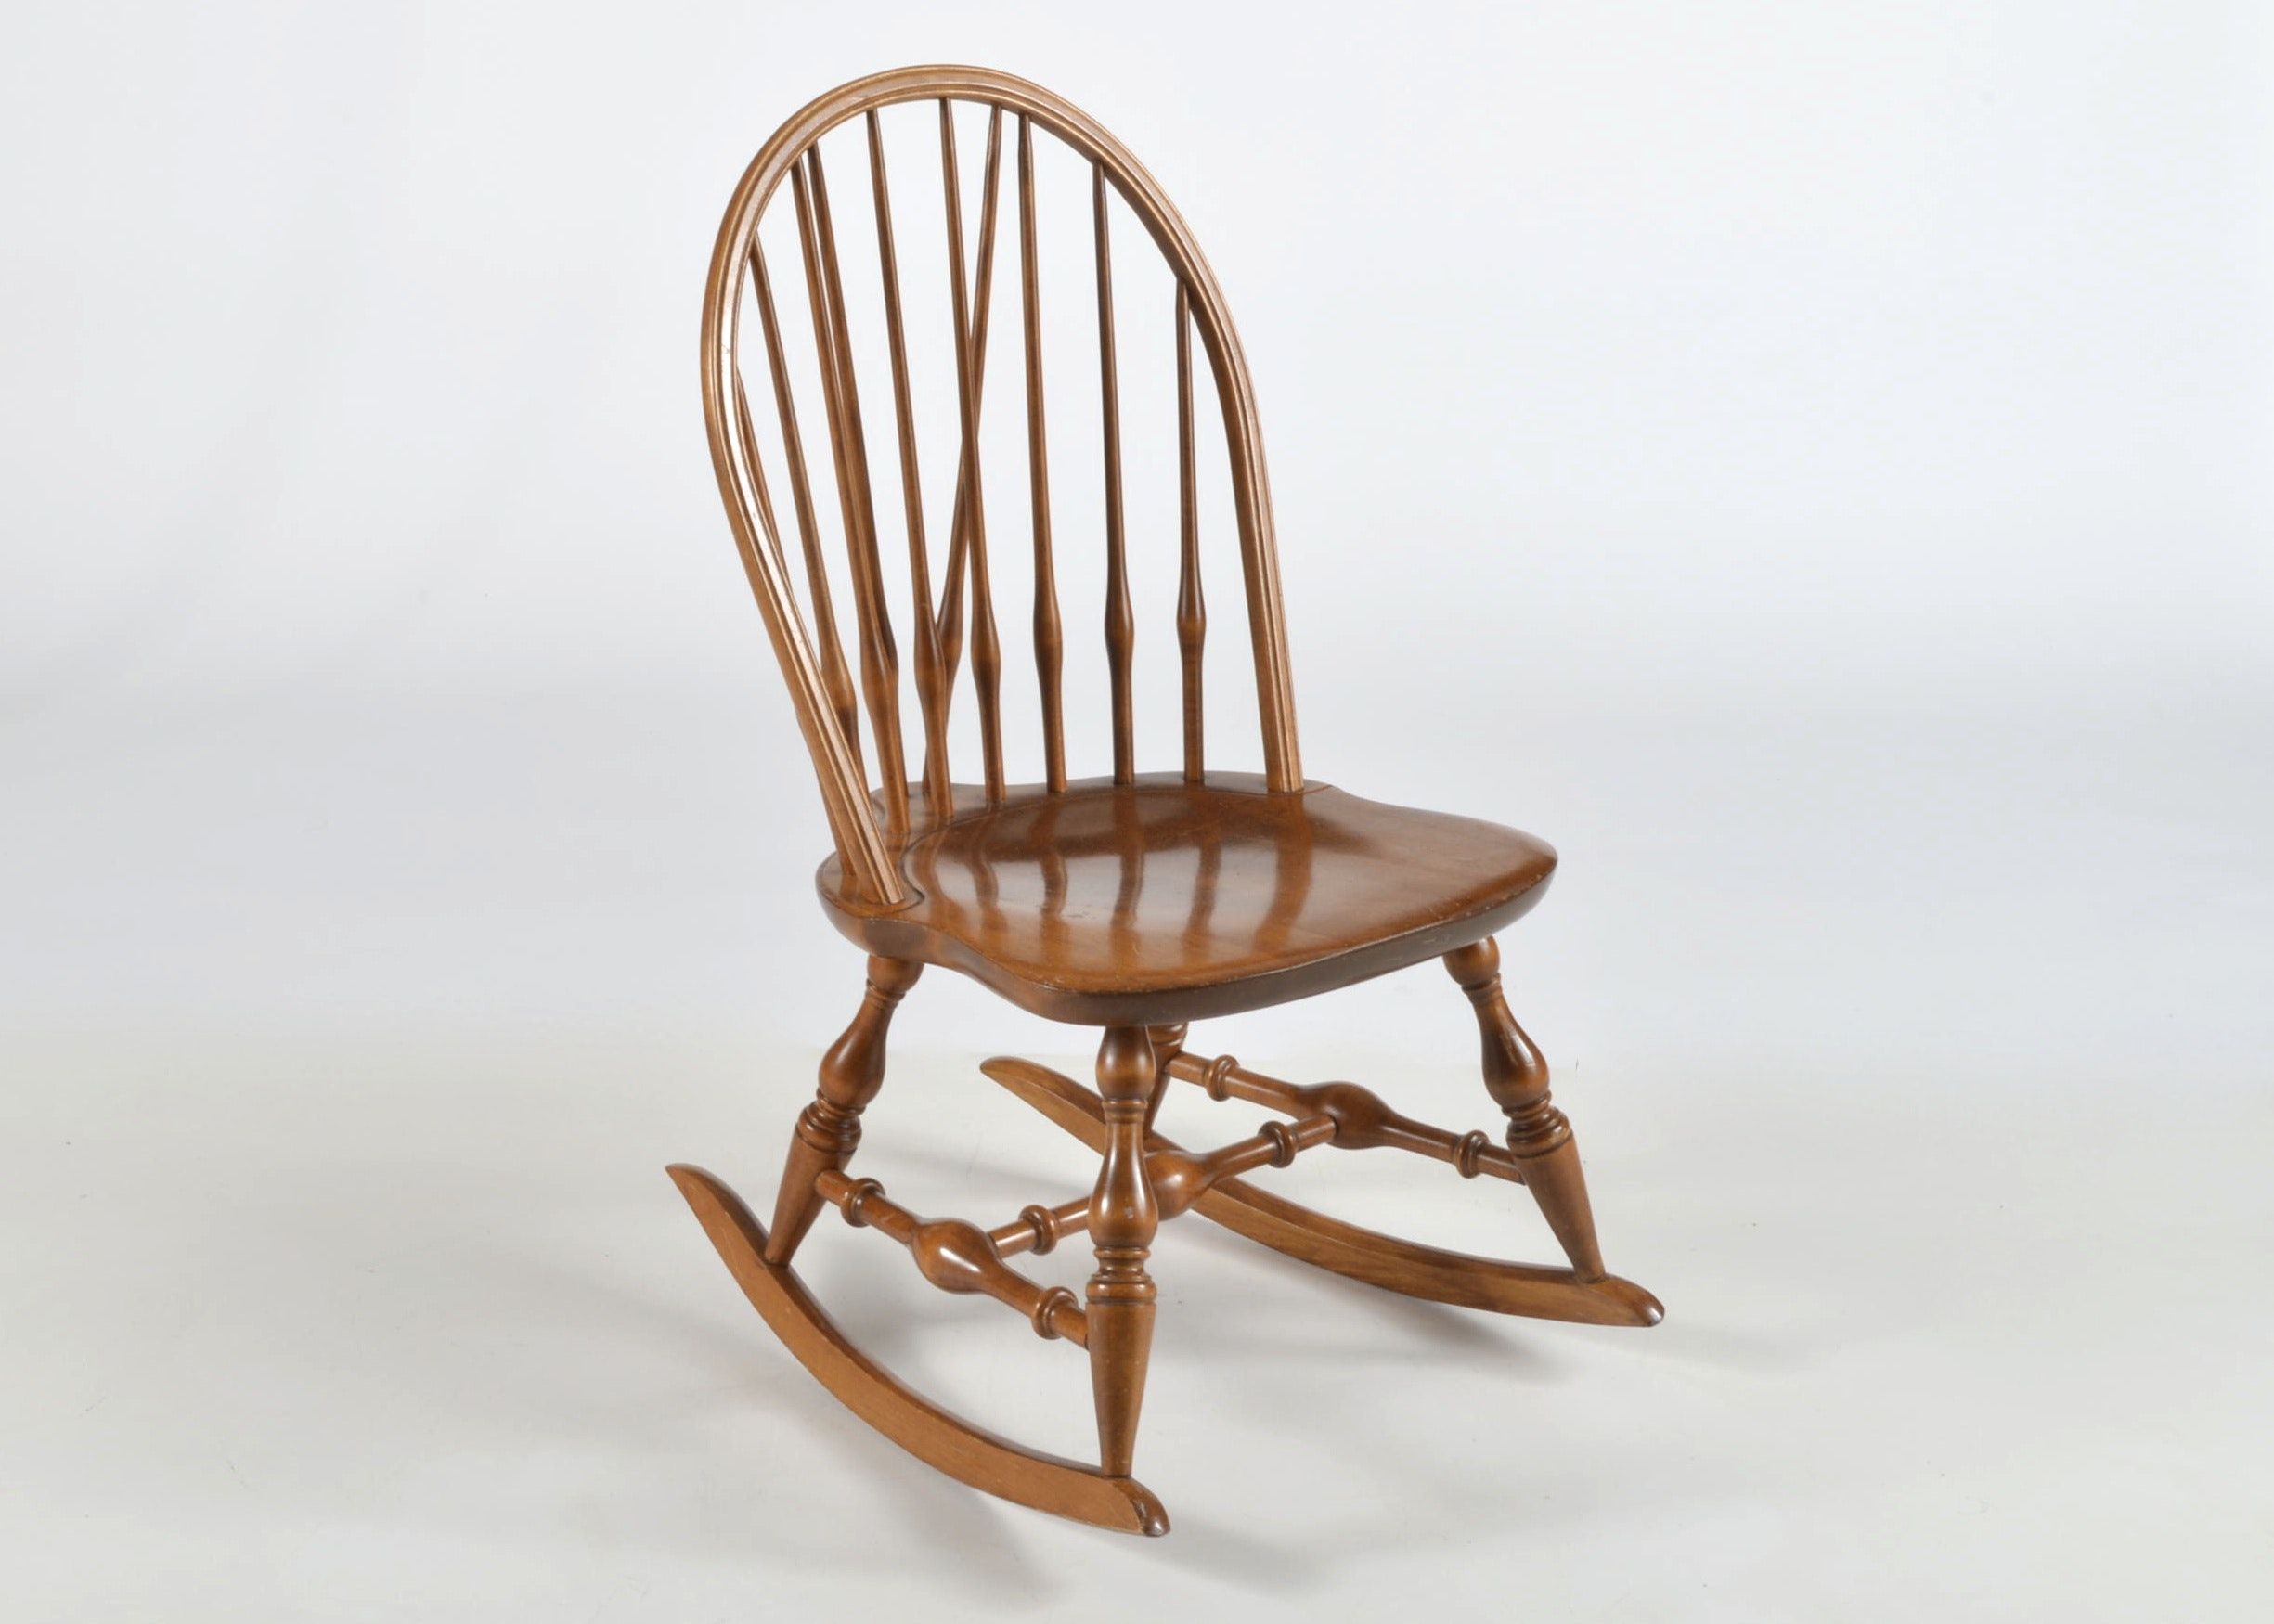 Nichols U0026 Stone Windsor Brace Loop Back Rocking Chair ...